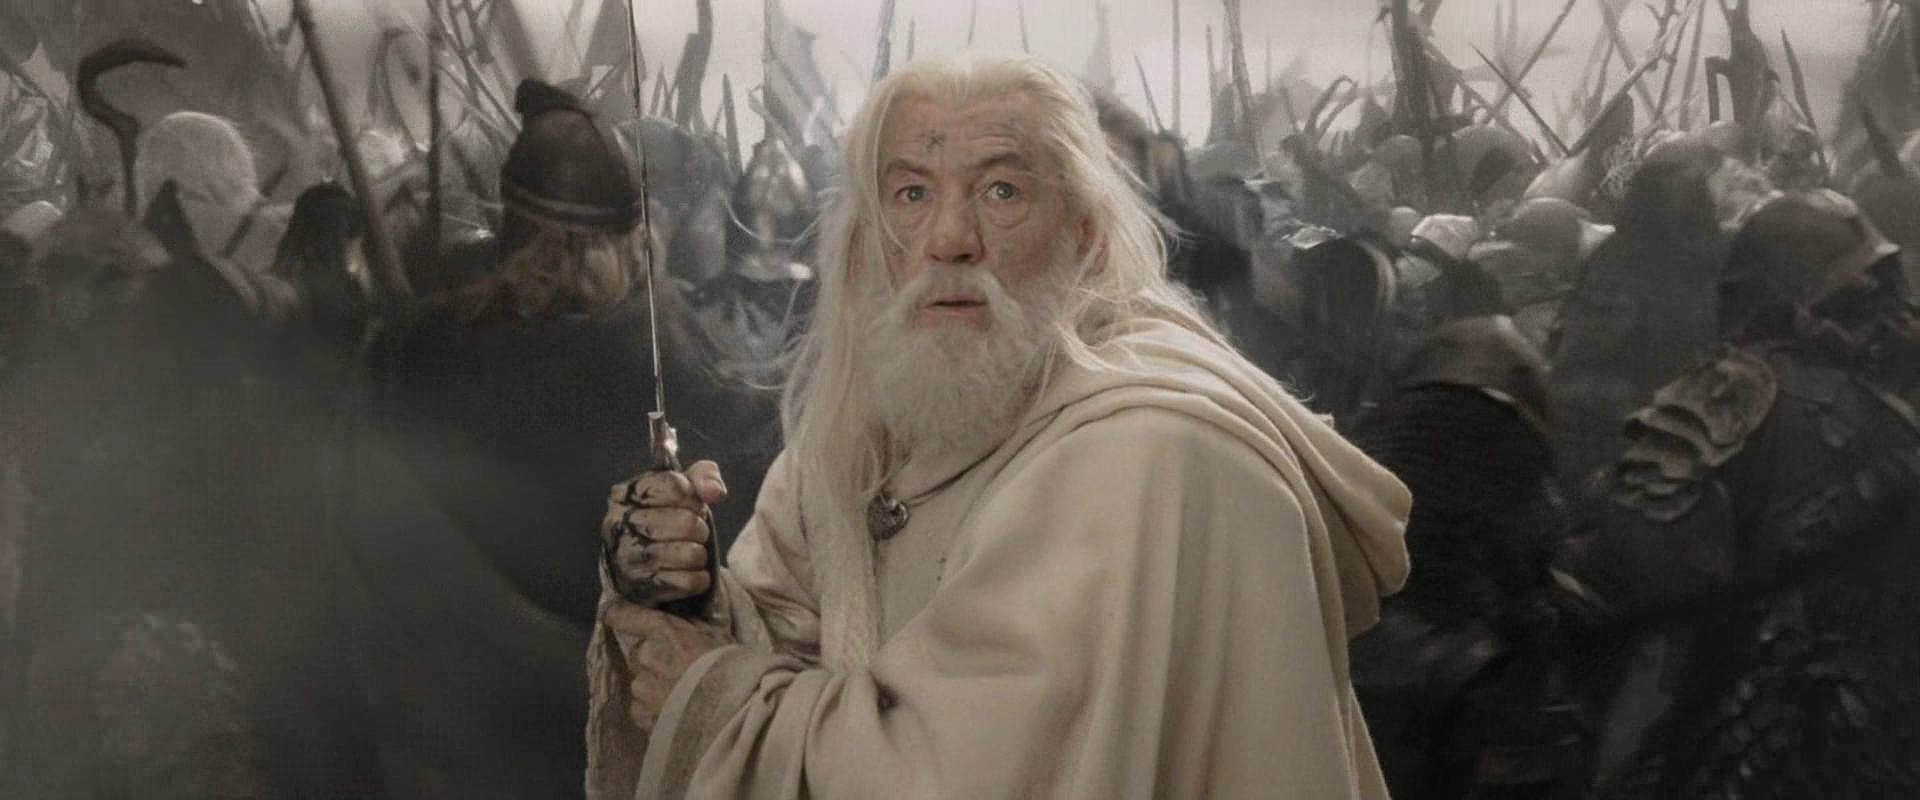 Sir Ian McKellen as Gandalf in The Lord of the Rings: The Return of the King